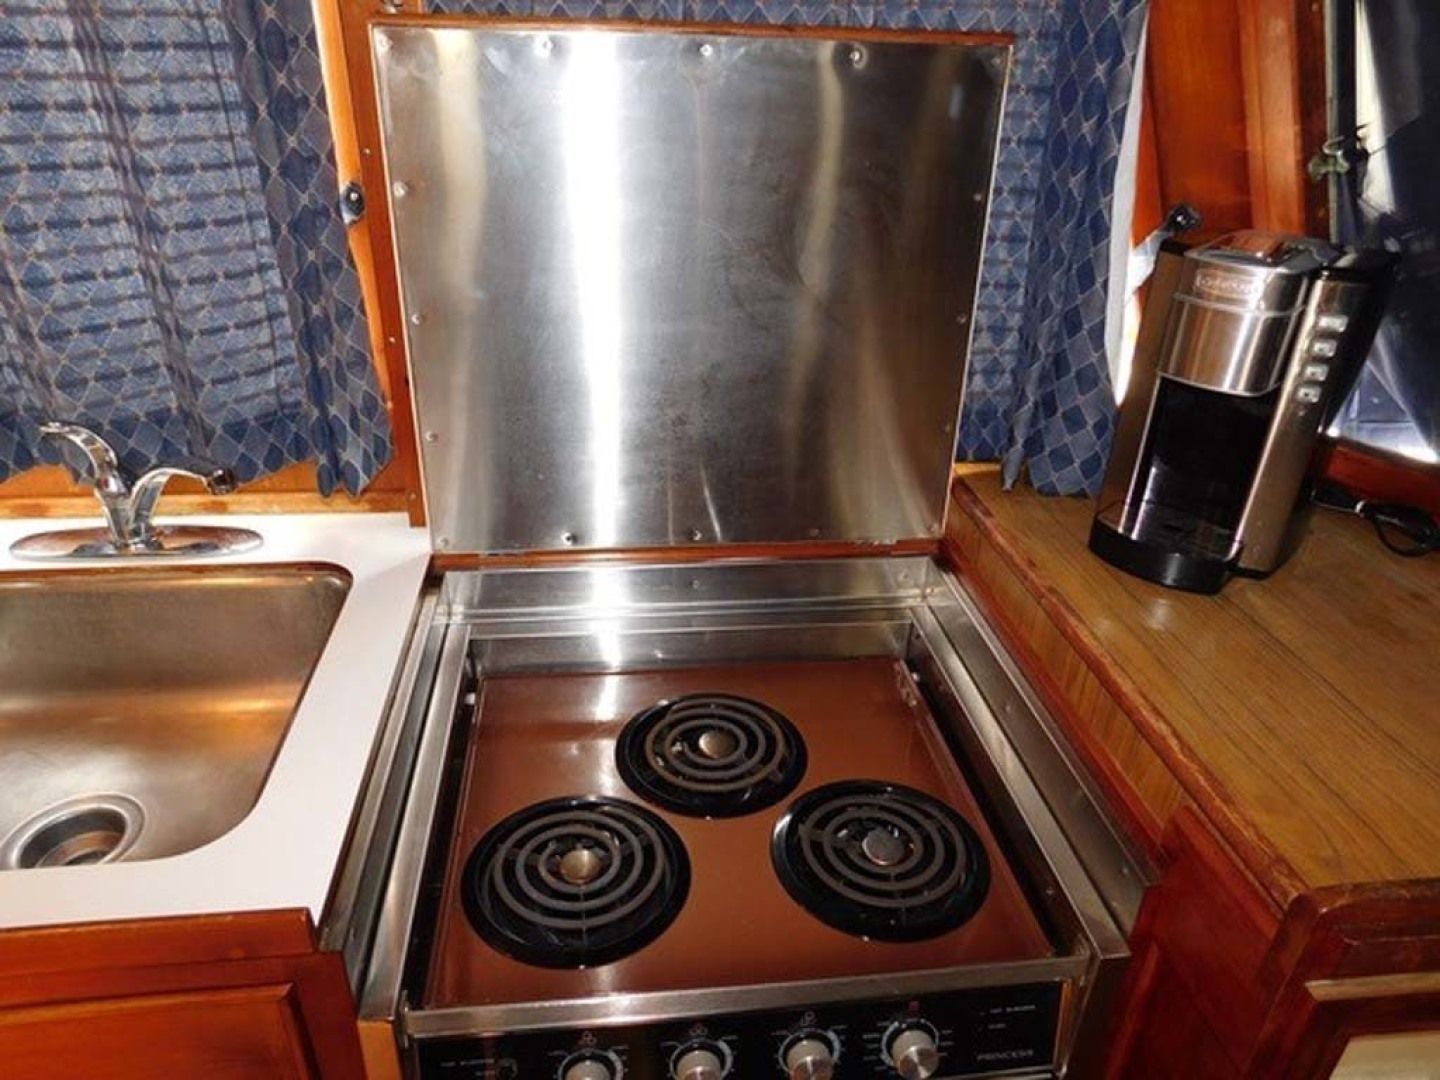 Grand Banks-42 Classic 1990-Stina Marie Merritt Island-Florida-United States-Galley Princess Stove & Oven-1323225 | Thumbnail